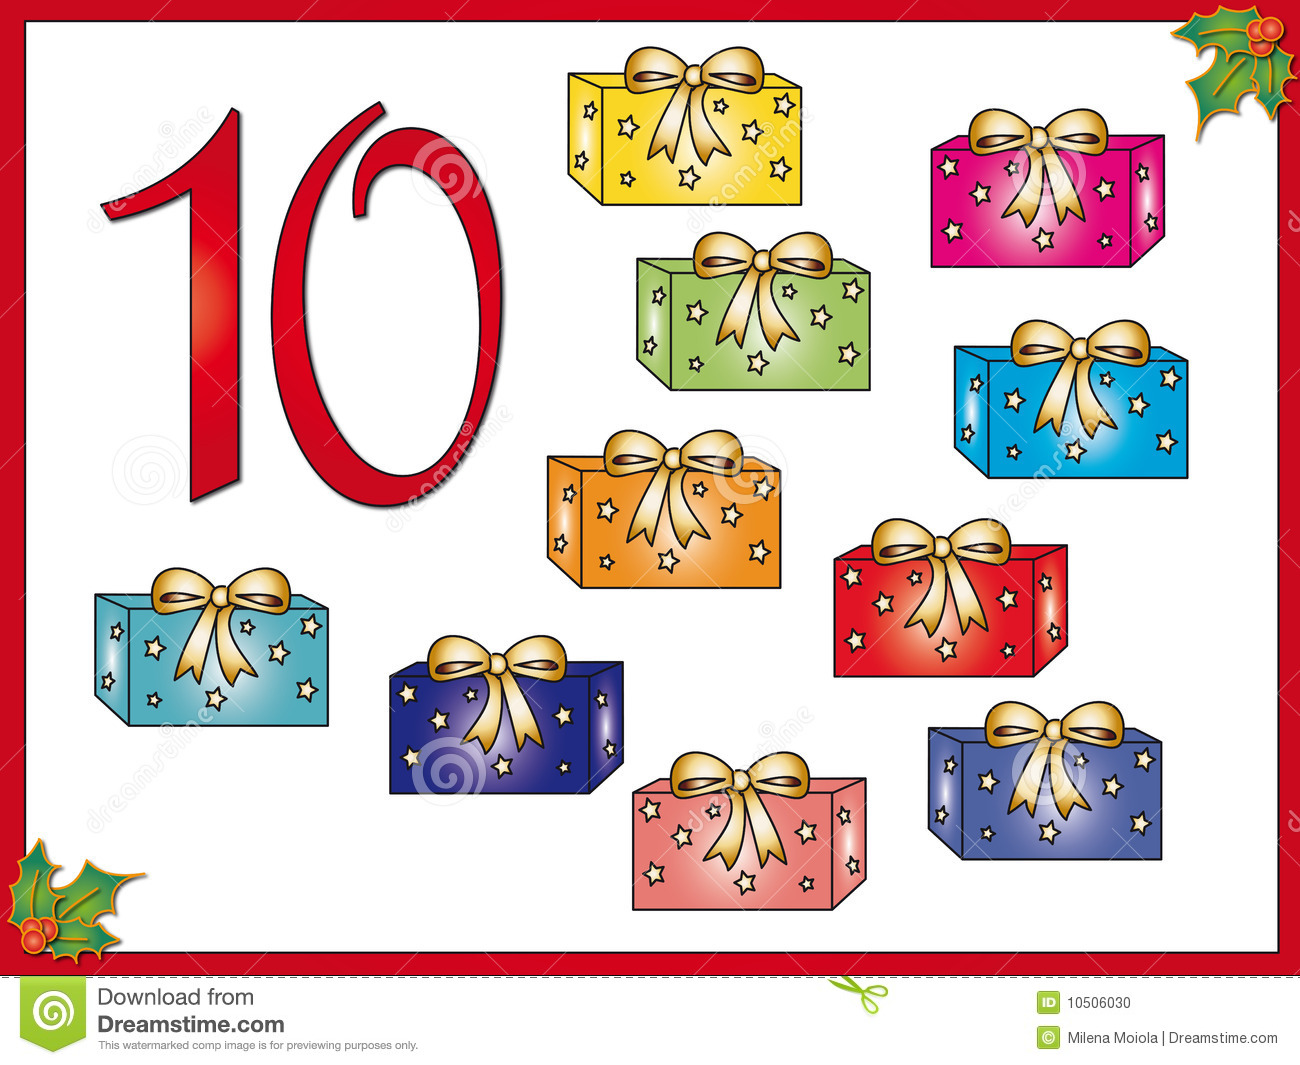 12 days of christmas 10 gifts